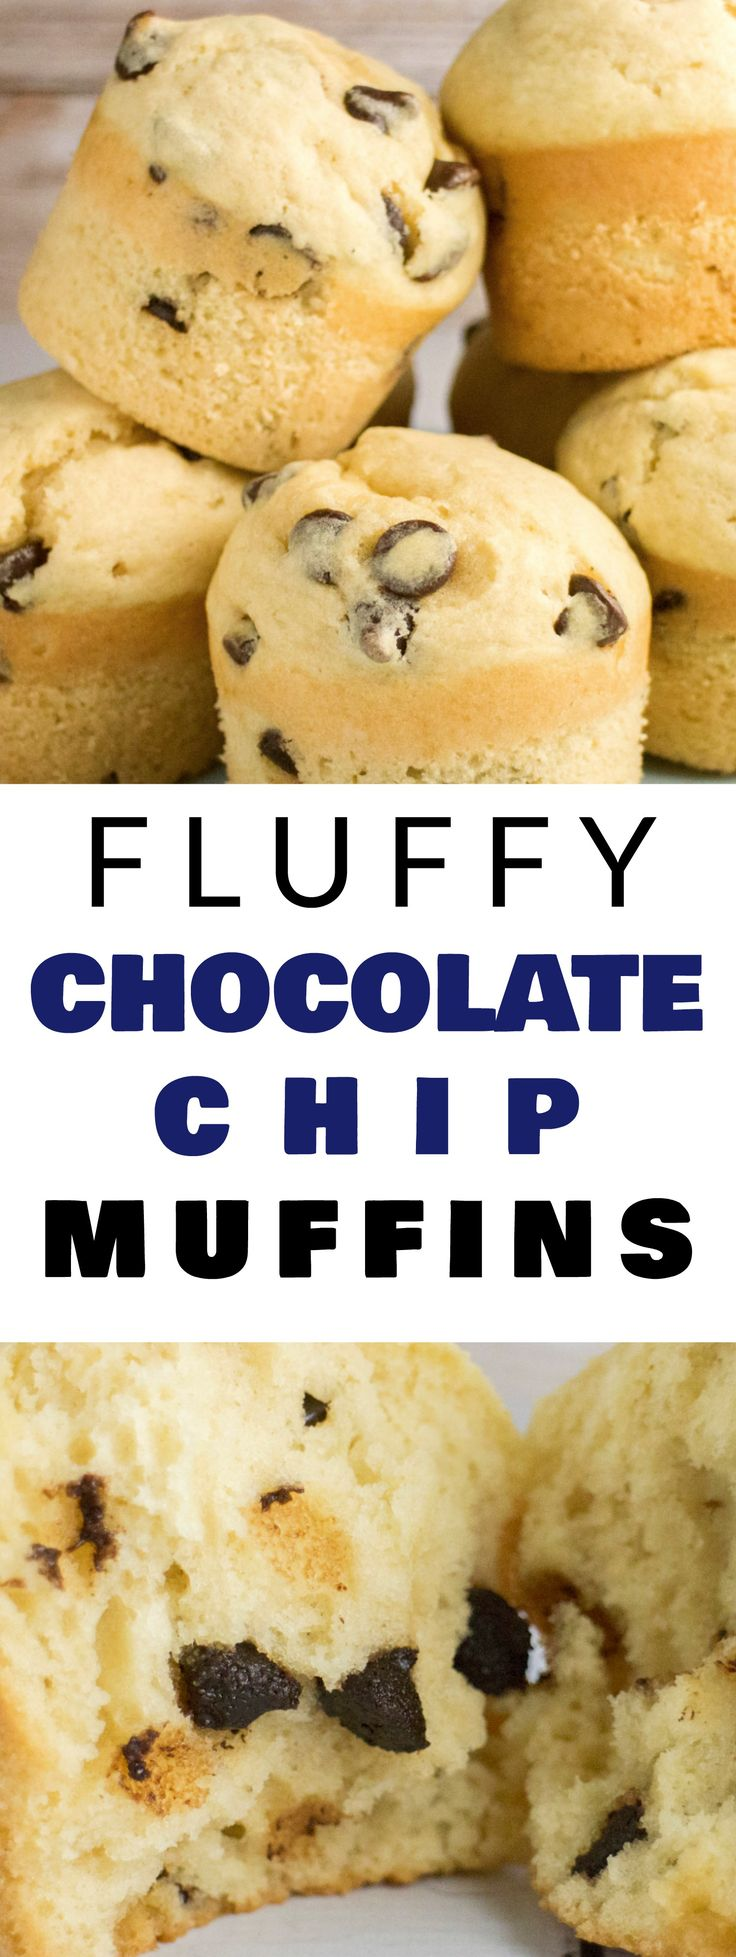 FLUFFY and EASY to make Chocolate Chip Muffins! This homemade recipe is my family's favorite! It makes delicious, moist muffins that are filled with chocolate chips! Make these light tasting yummy muffins for breakfast, snacks on the go or dessert!